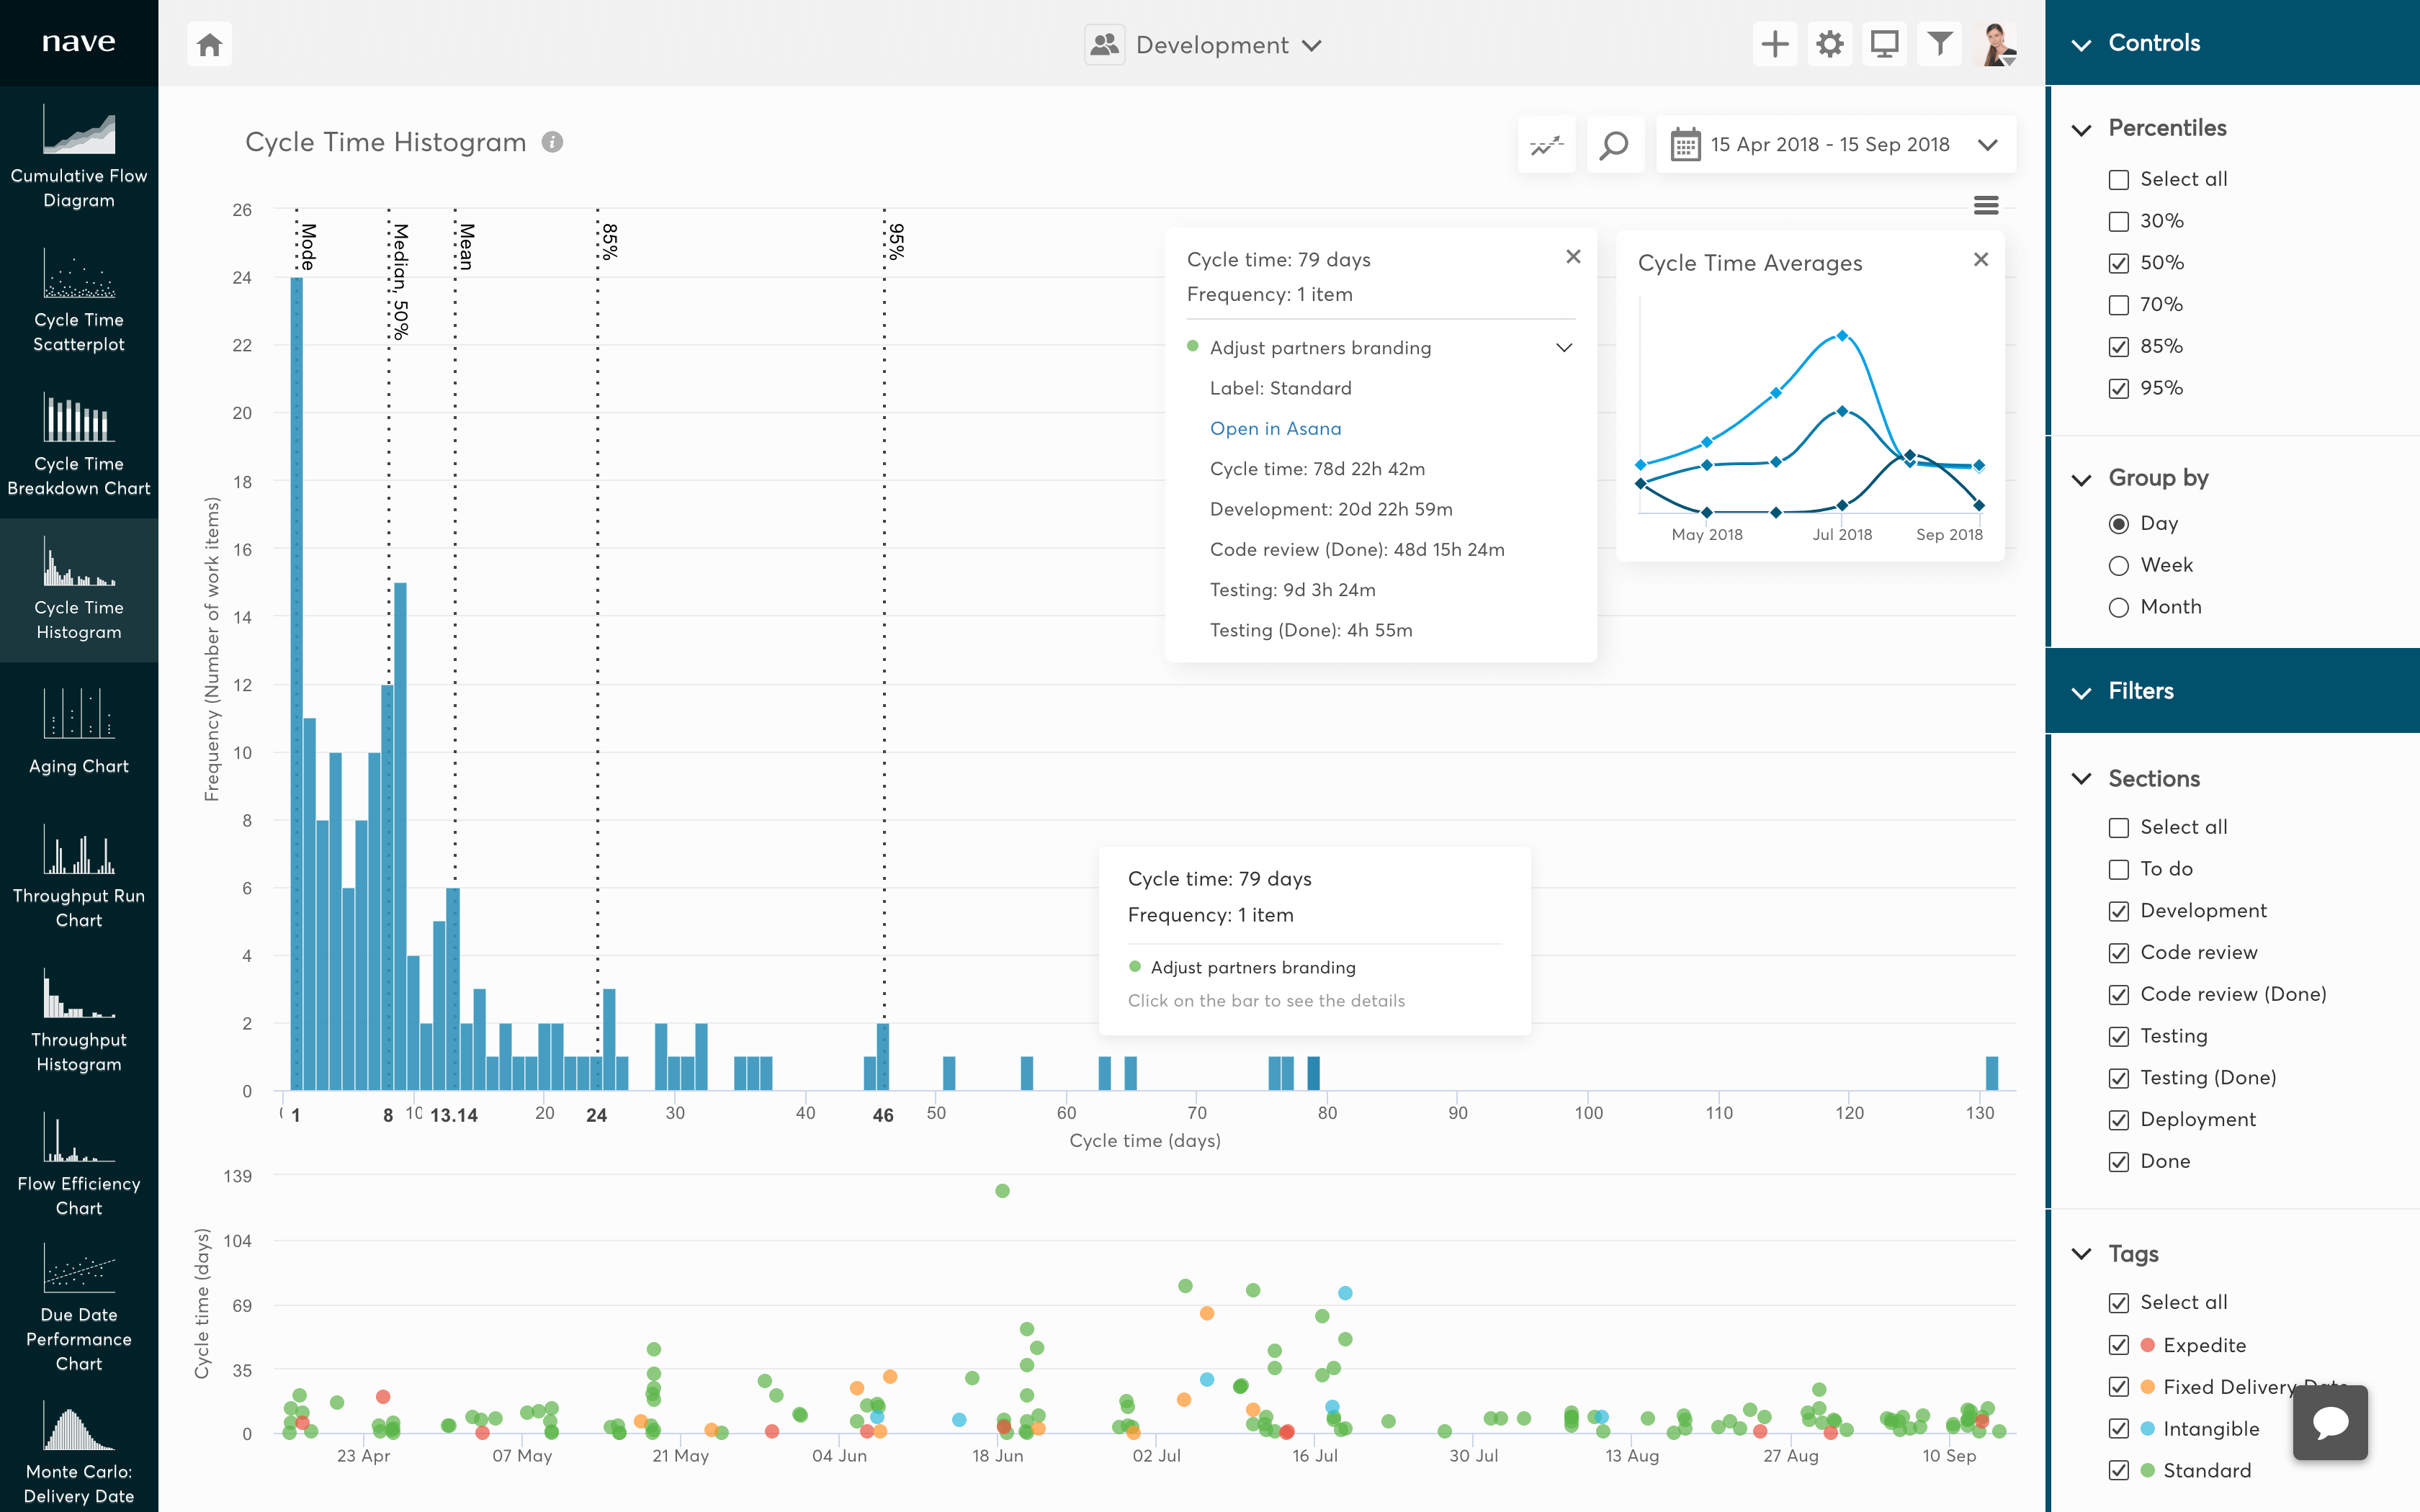 cycle time histogram for asana